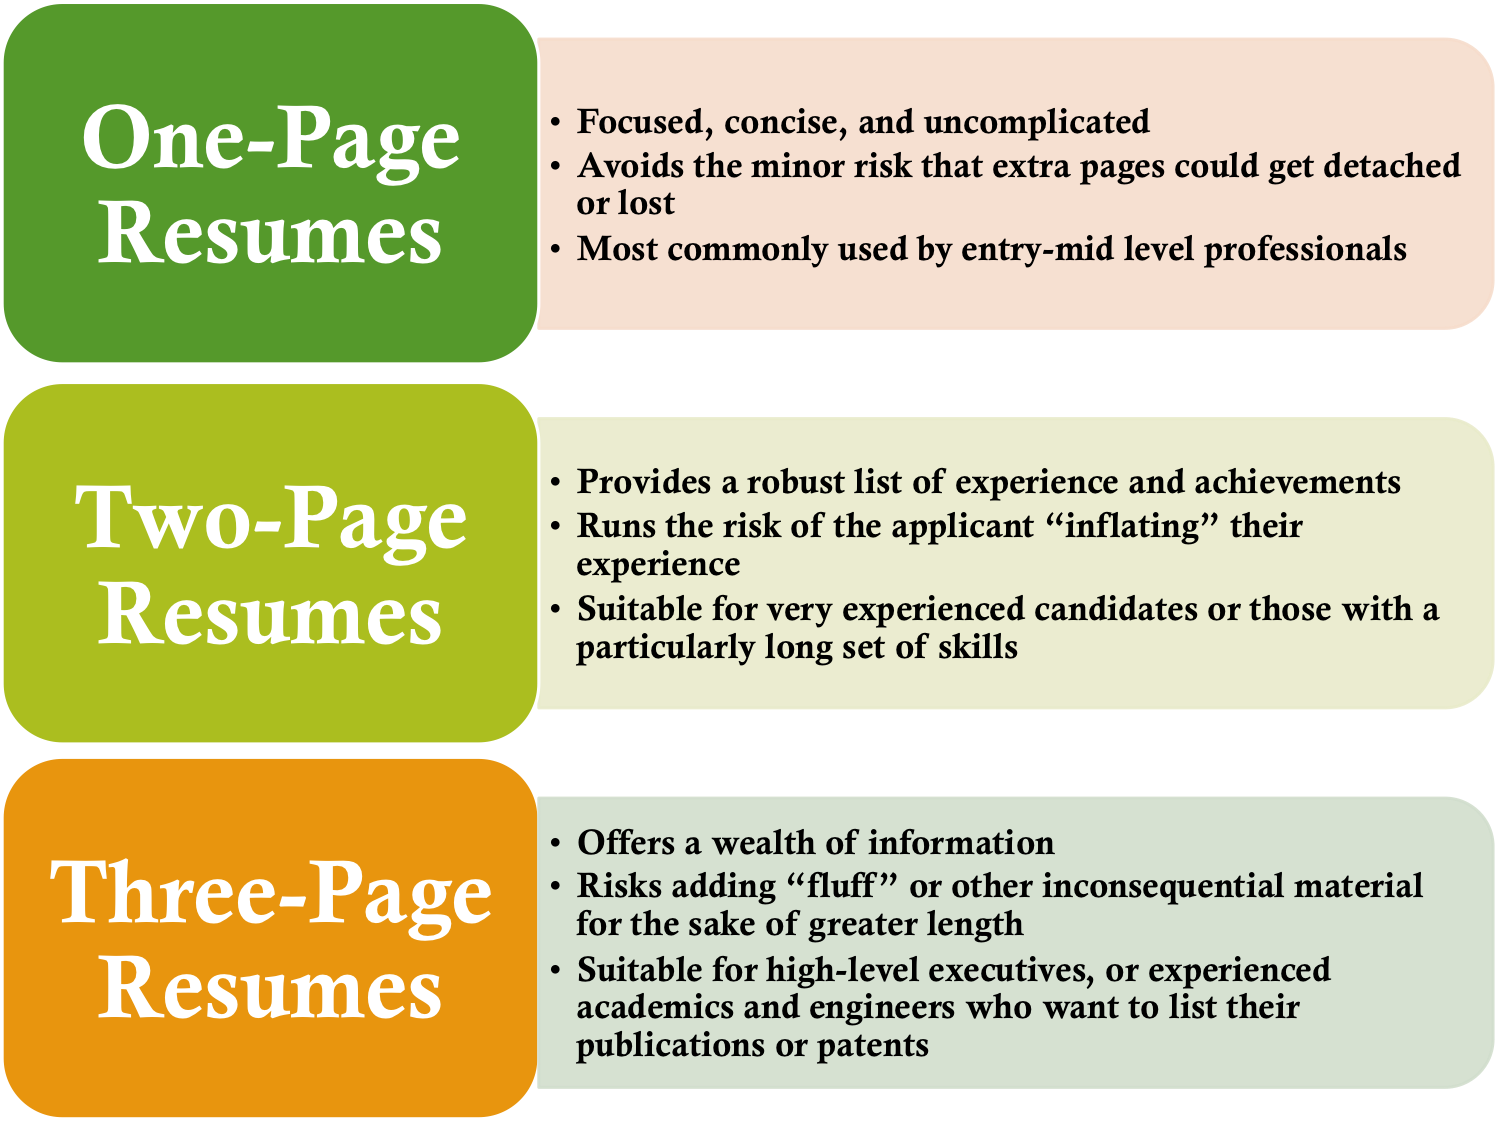 Ideal Resume Length  Skills Used For Resume